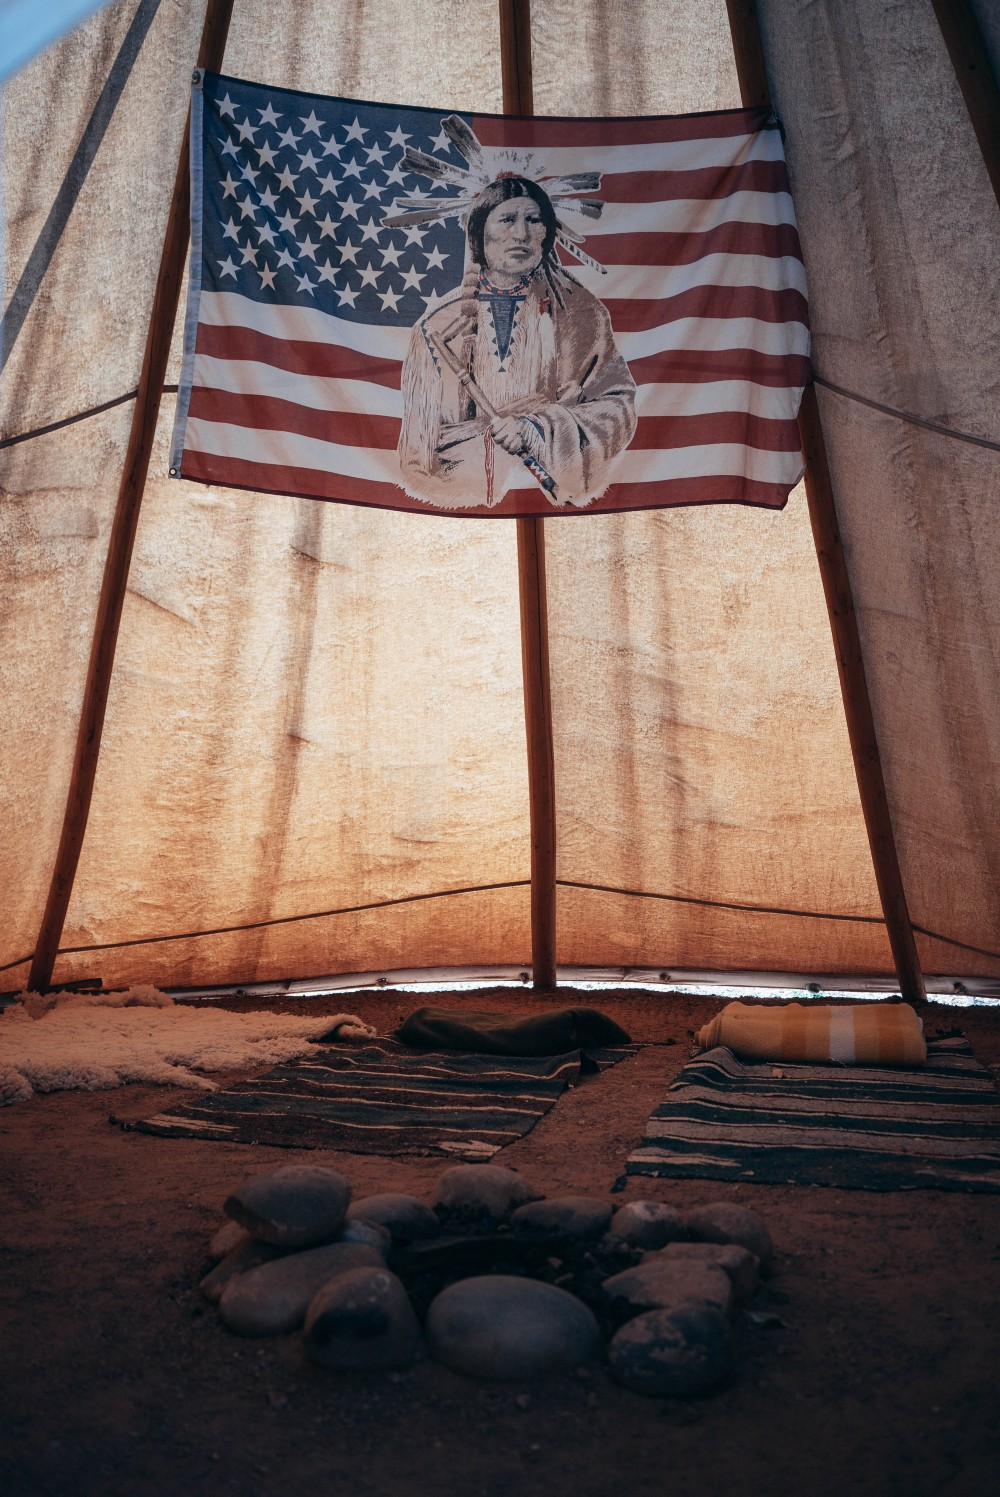 An image of a Native American elder imposed in the middle of an United States flag hangs from the inside of a tent styled in the tradition of an Indigenous tribe, complete with fur pelts, blankets, and a stone bordered fire pit on the earth beneath.